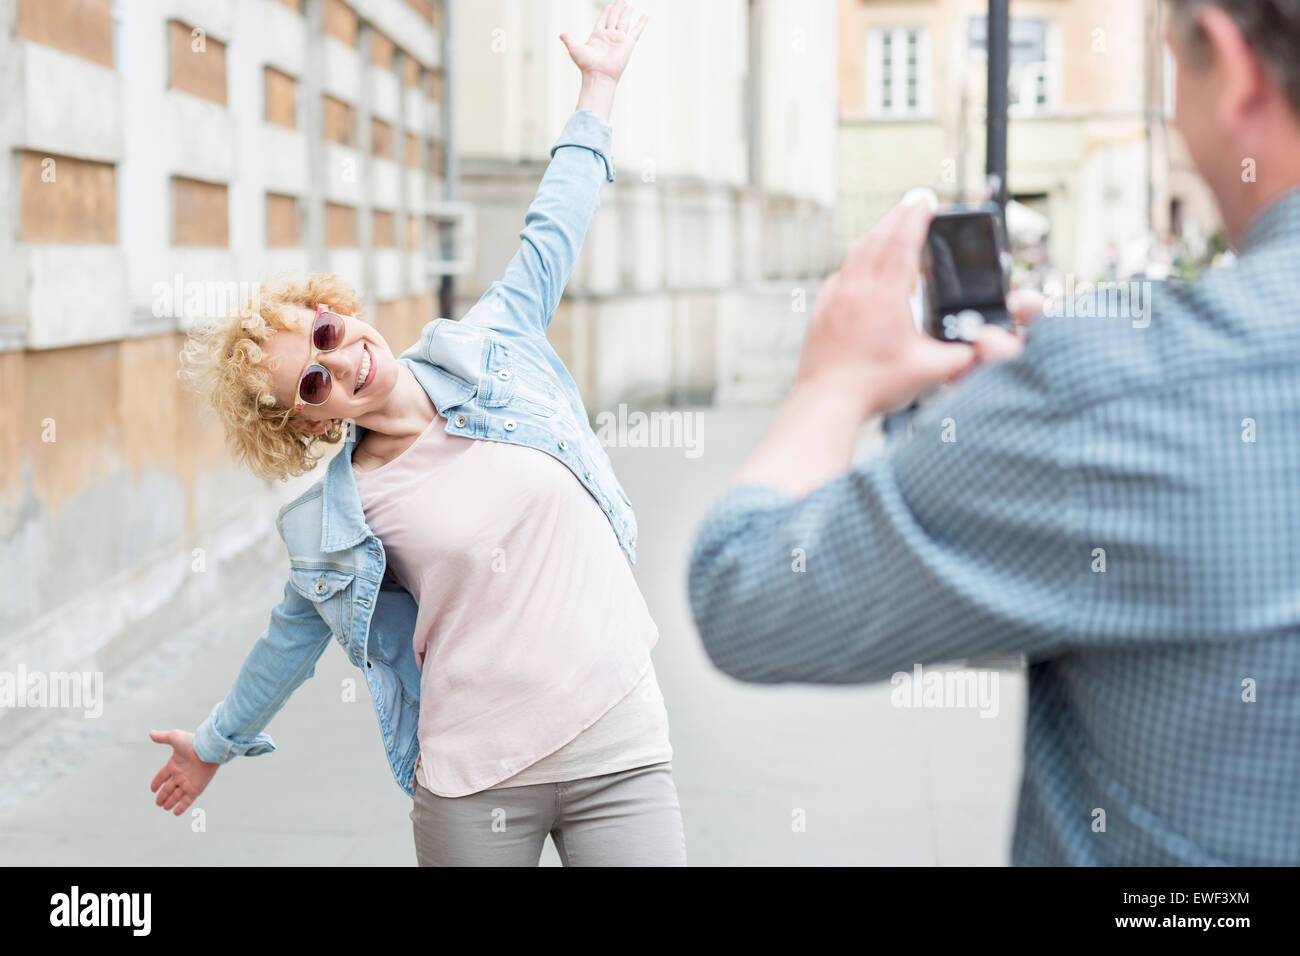 Man photographing playful woman standing with arms outstretched on city street - Stock Image